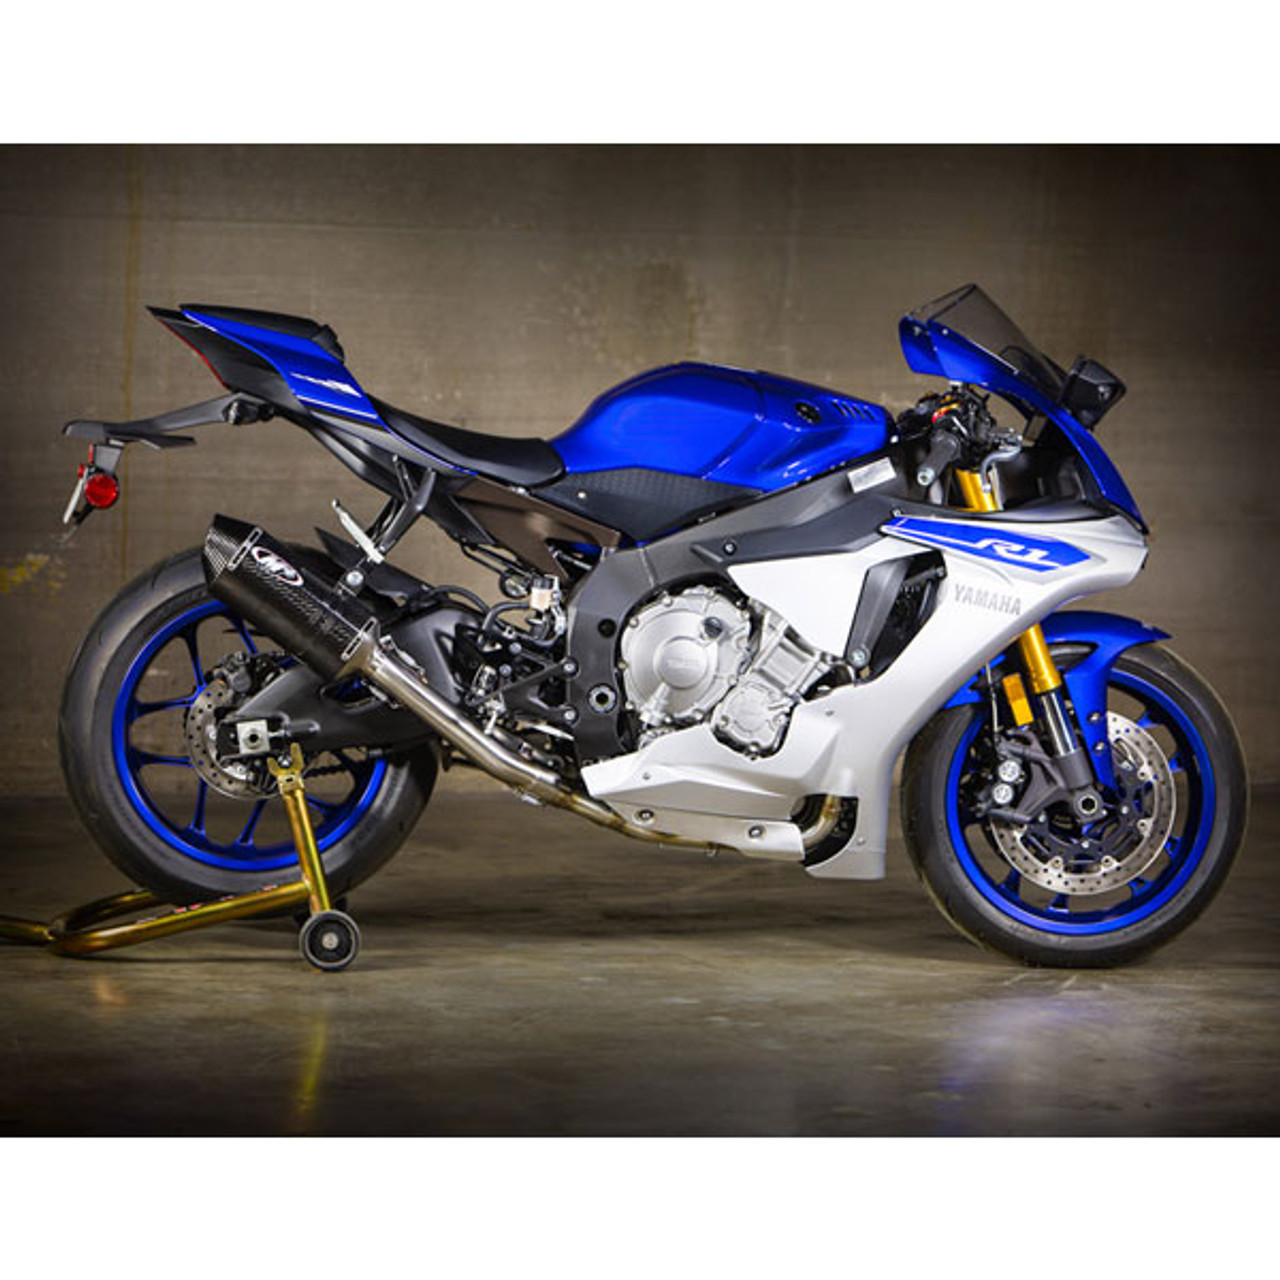 M4 Exhaust Yamaha Yzf R1 15 19 Full Exhaust System